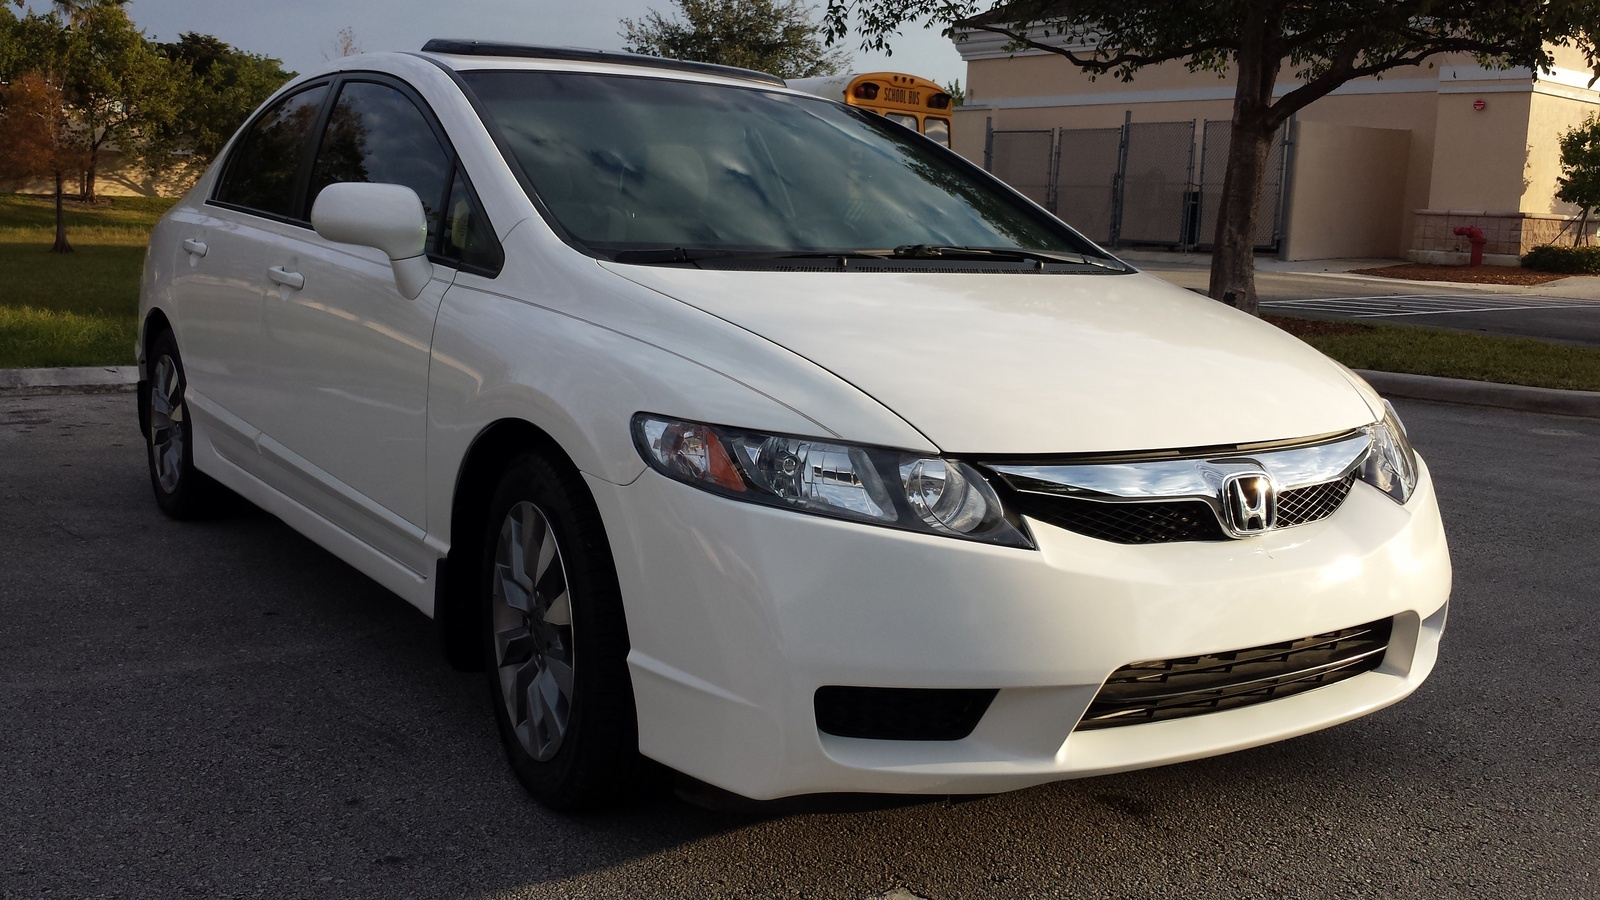 2009 honda civic hybrid review ratings specs prices autos post. Black Bedroom Furniture Sets. Home Design Ideas